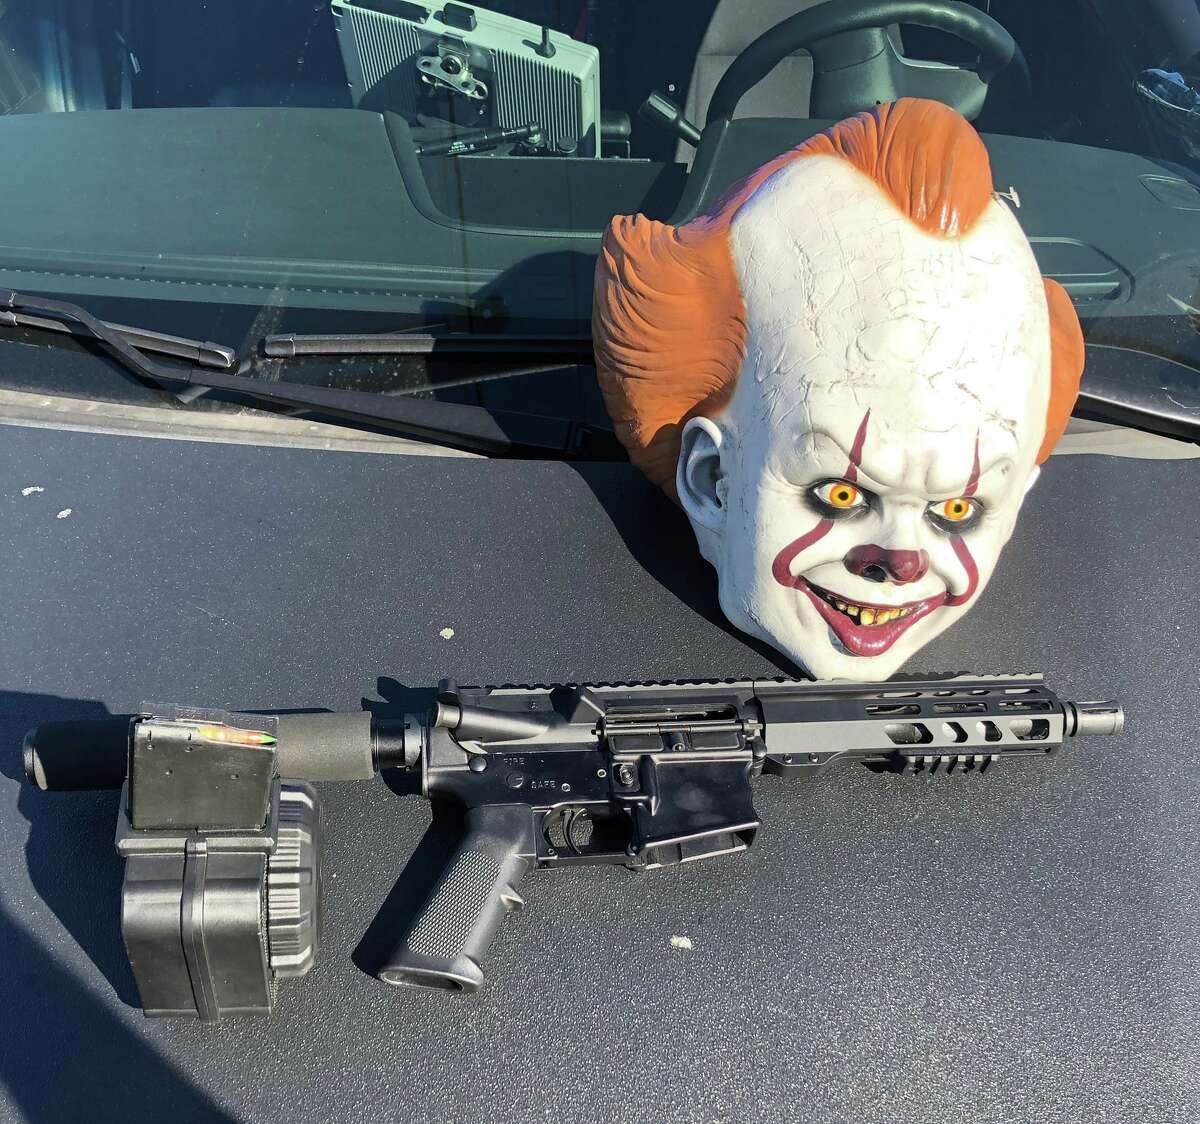 The AR-15, which had 50-round drum machine with one bullet in the chamber, was found concealed in a bag in the vehicle's backseat, San Leandro police said.